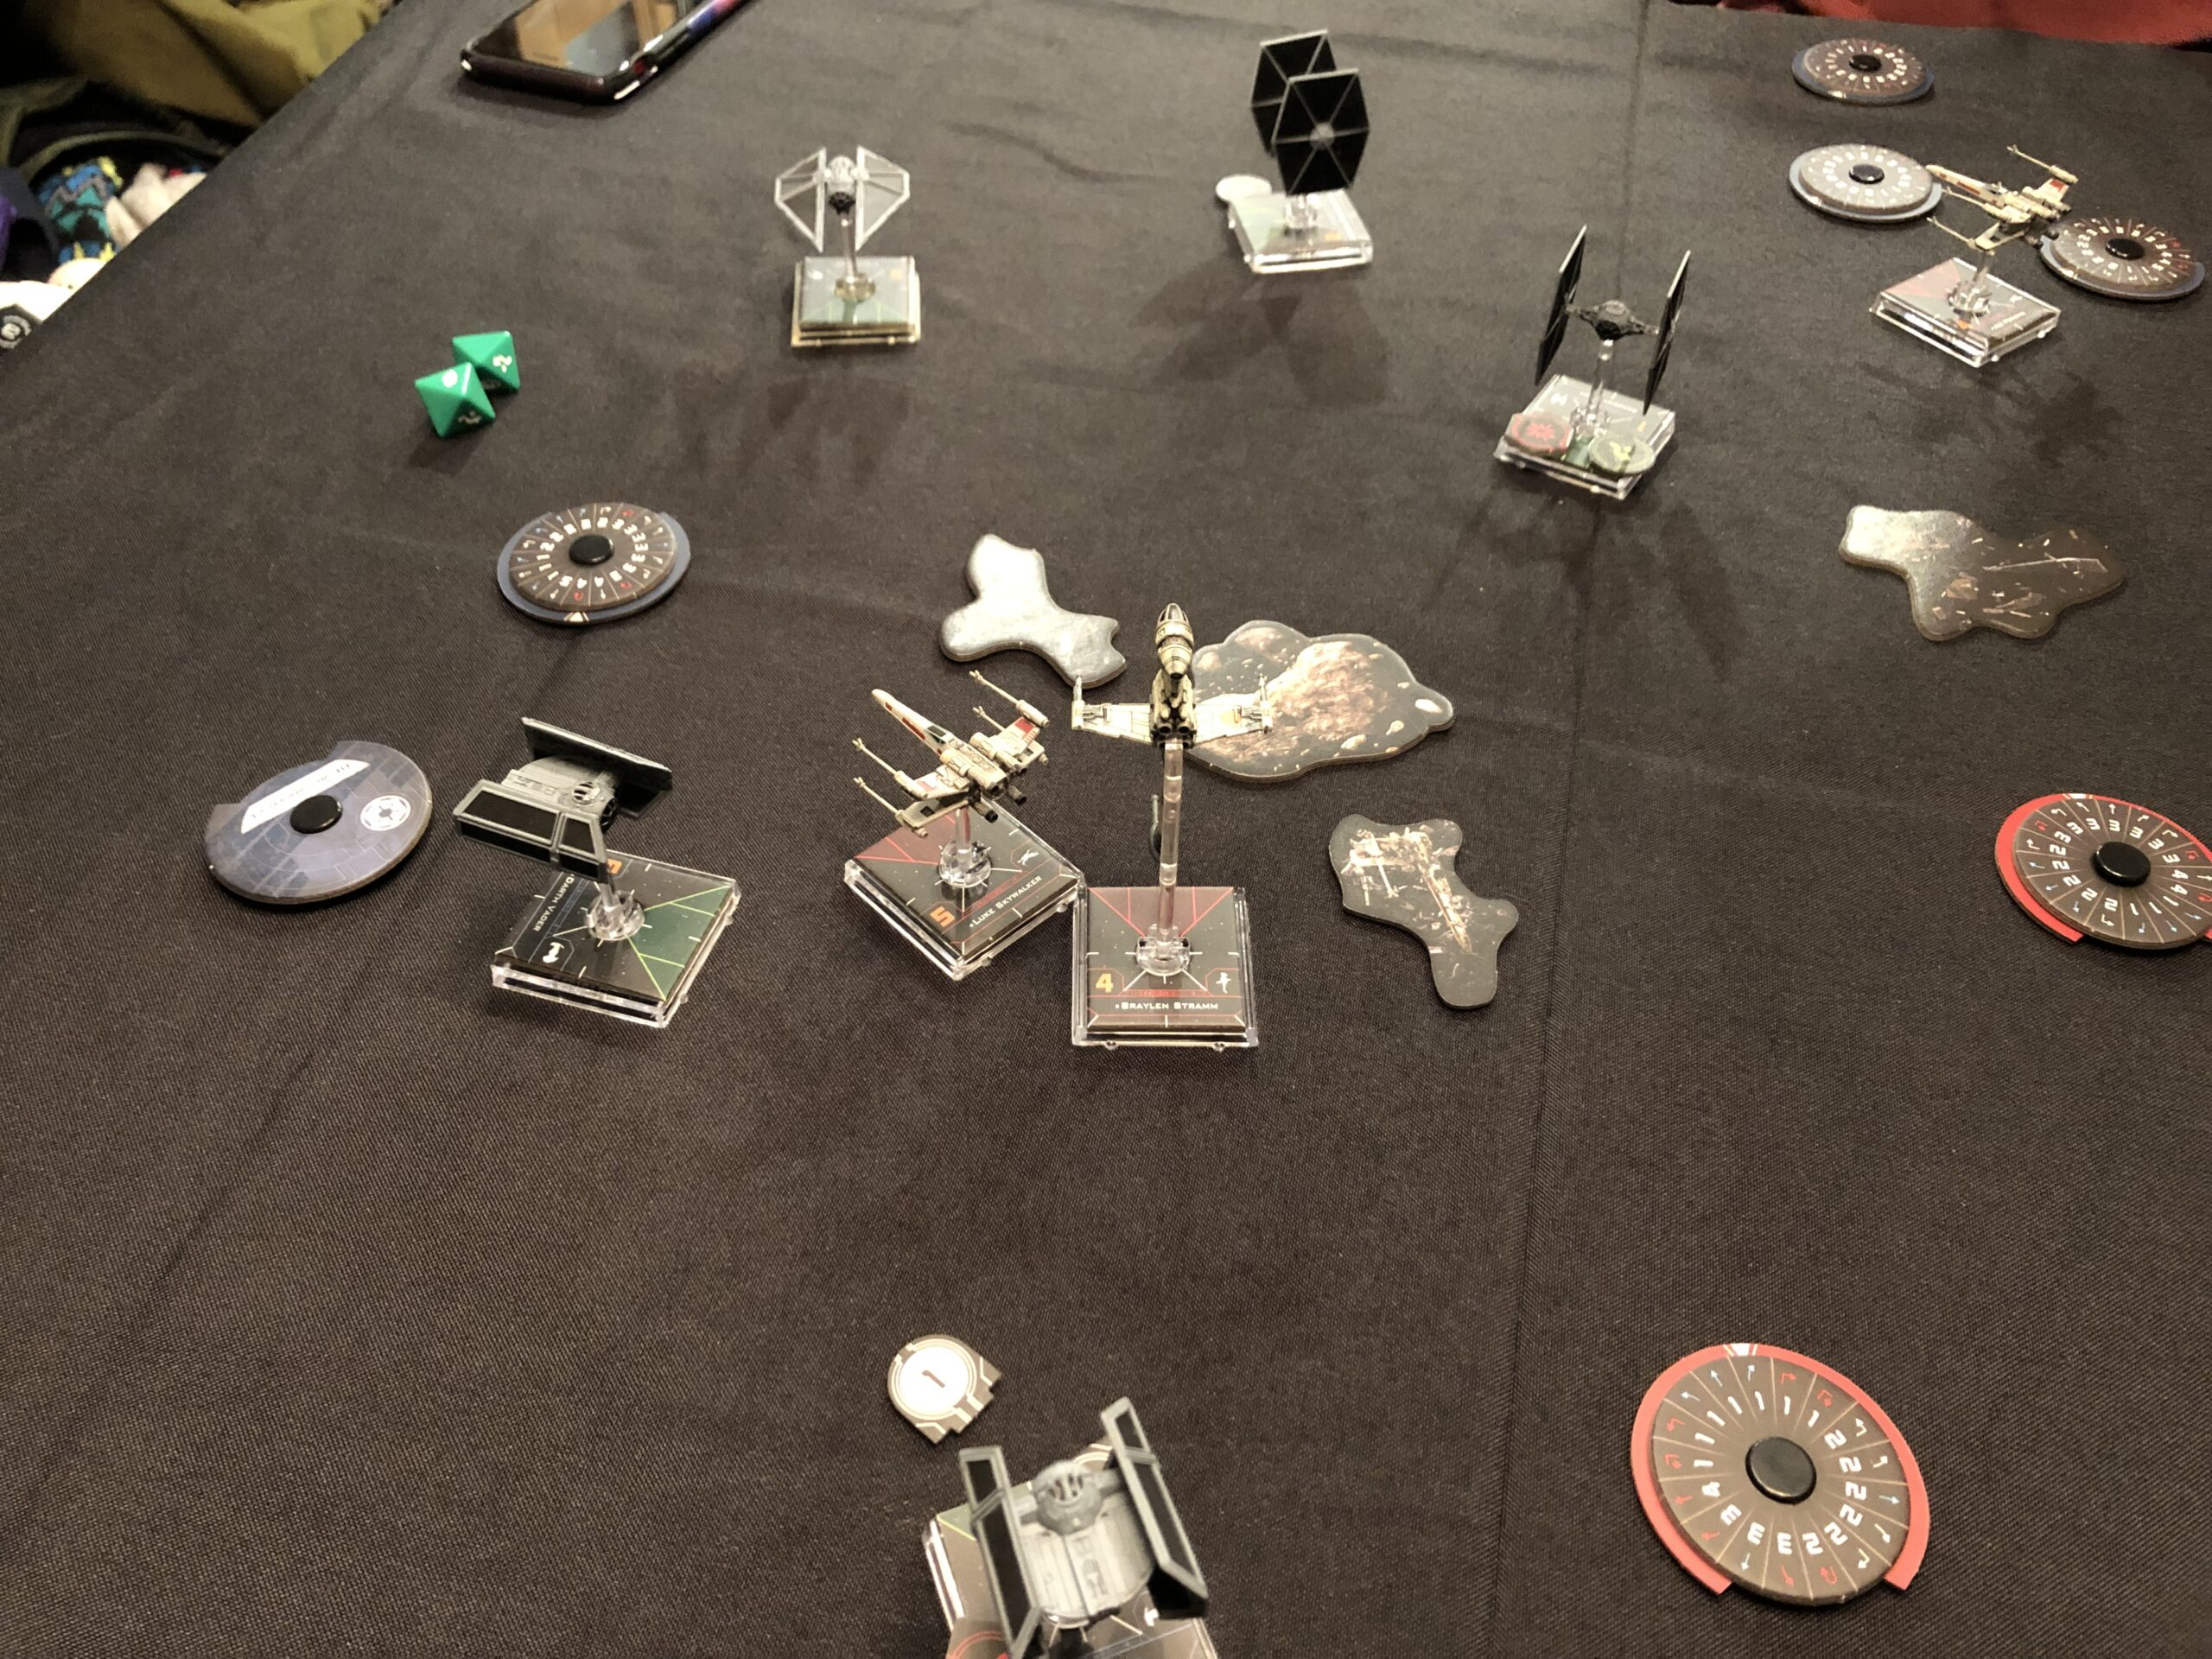 X-Wing Miniatures Game, in pitched battle